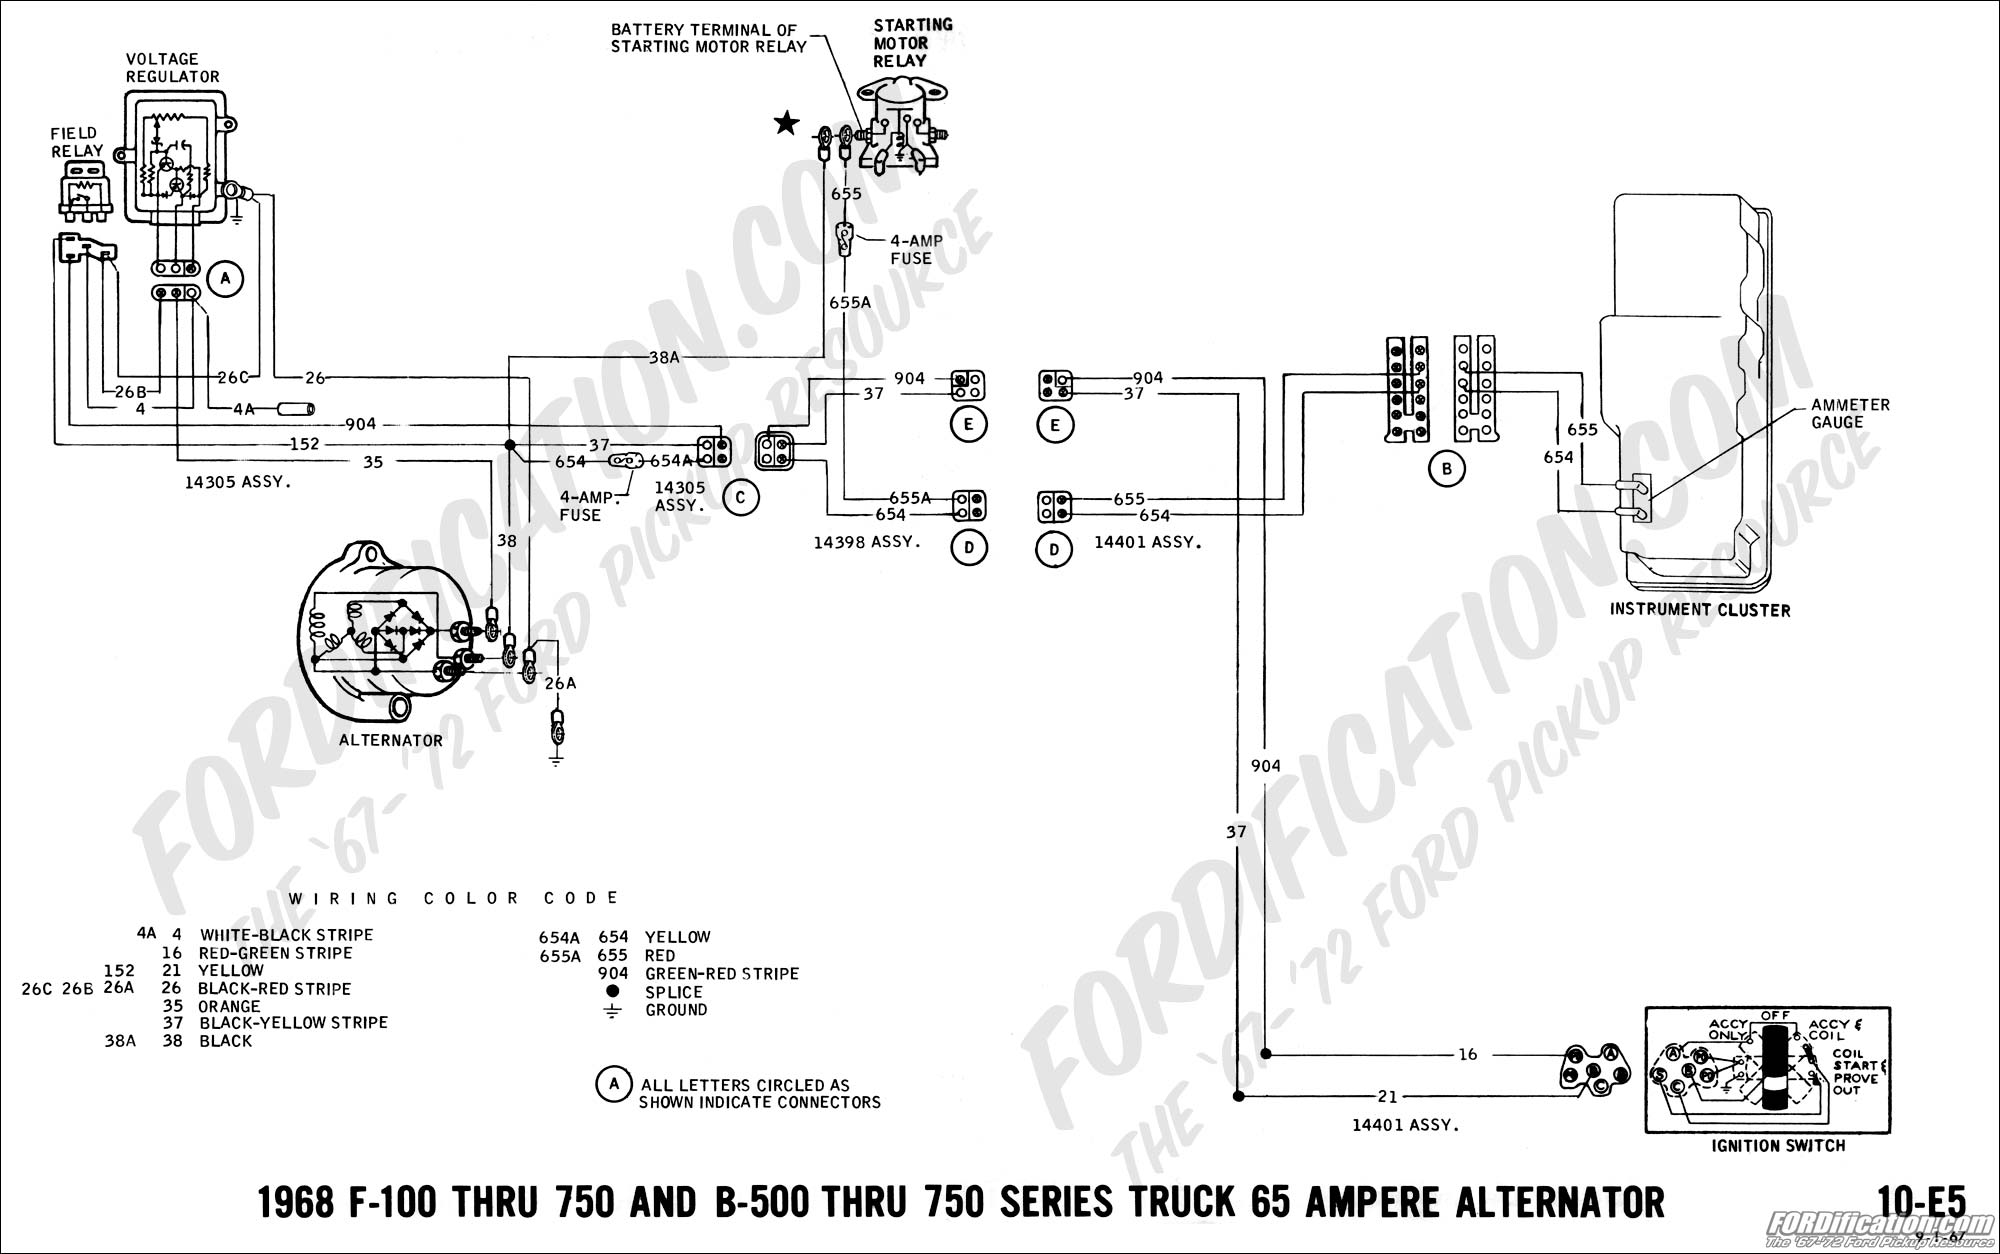 wiring diagram for ford alternator the wiring diagram ford truck technical drawings and schematics section h wiring wiring diagram